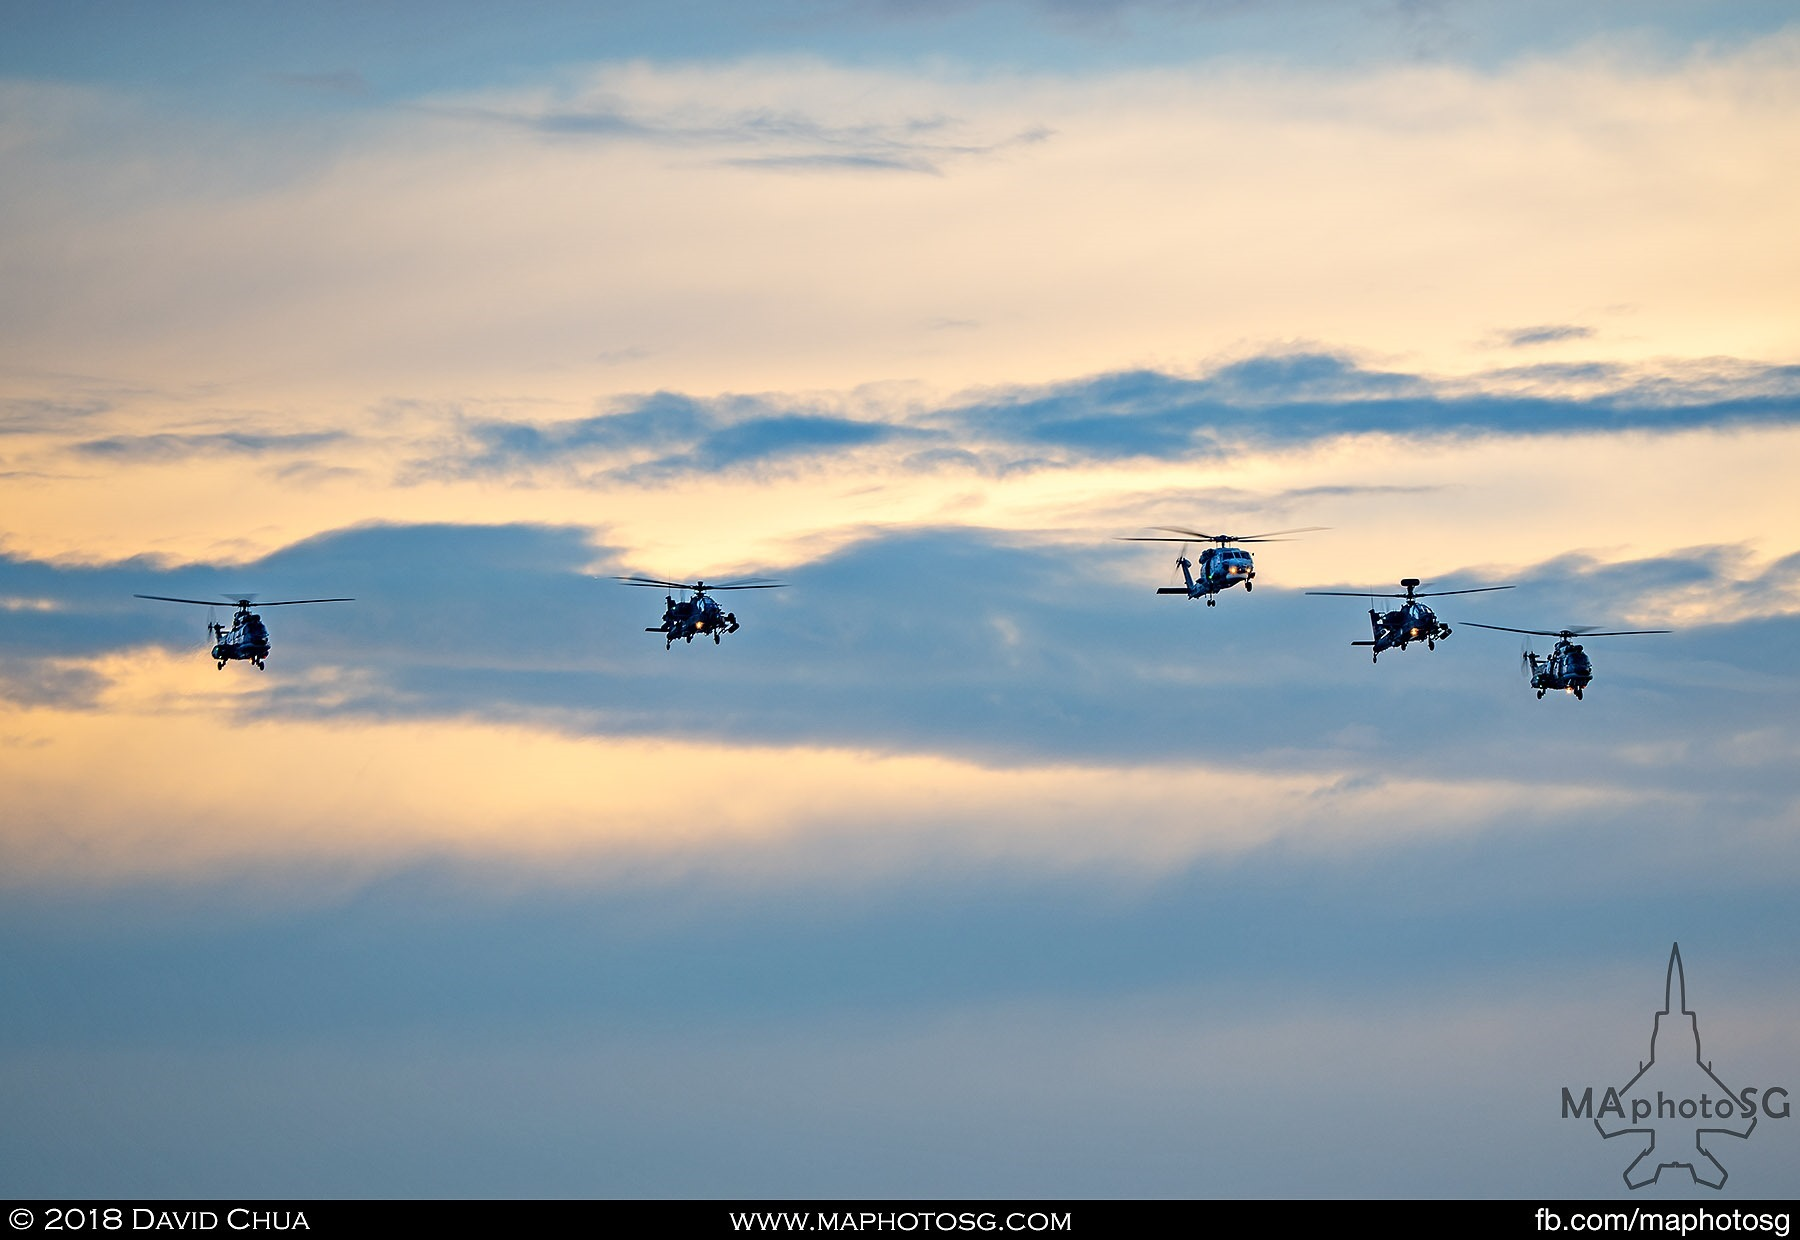 1903 – Helicopter formation of a S-70B Seahawk 2 x AH64 Apaches and 2 x AS-332M Super Pumas